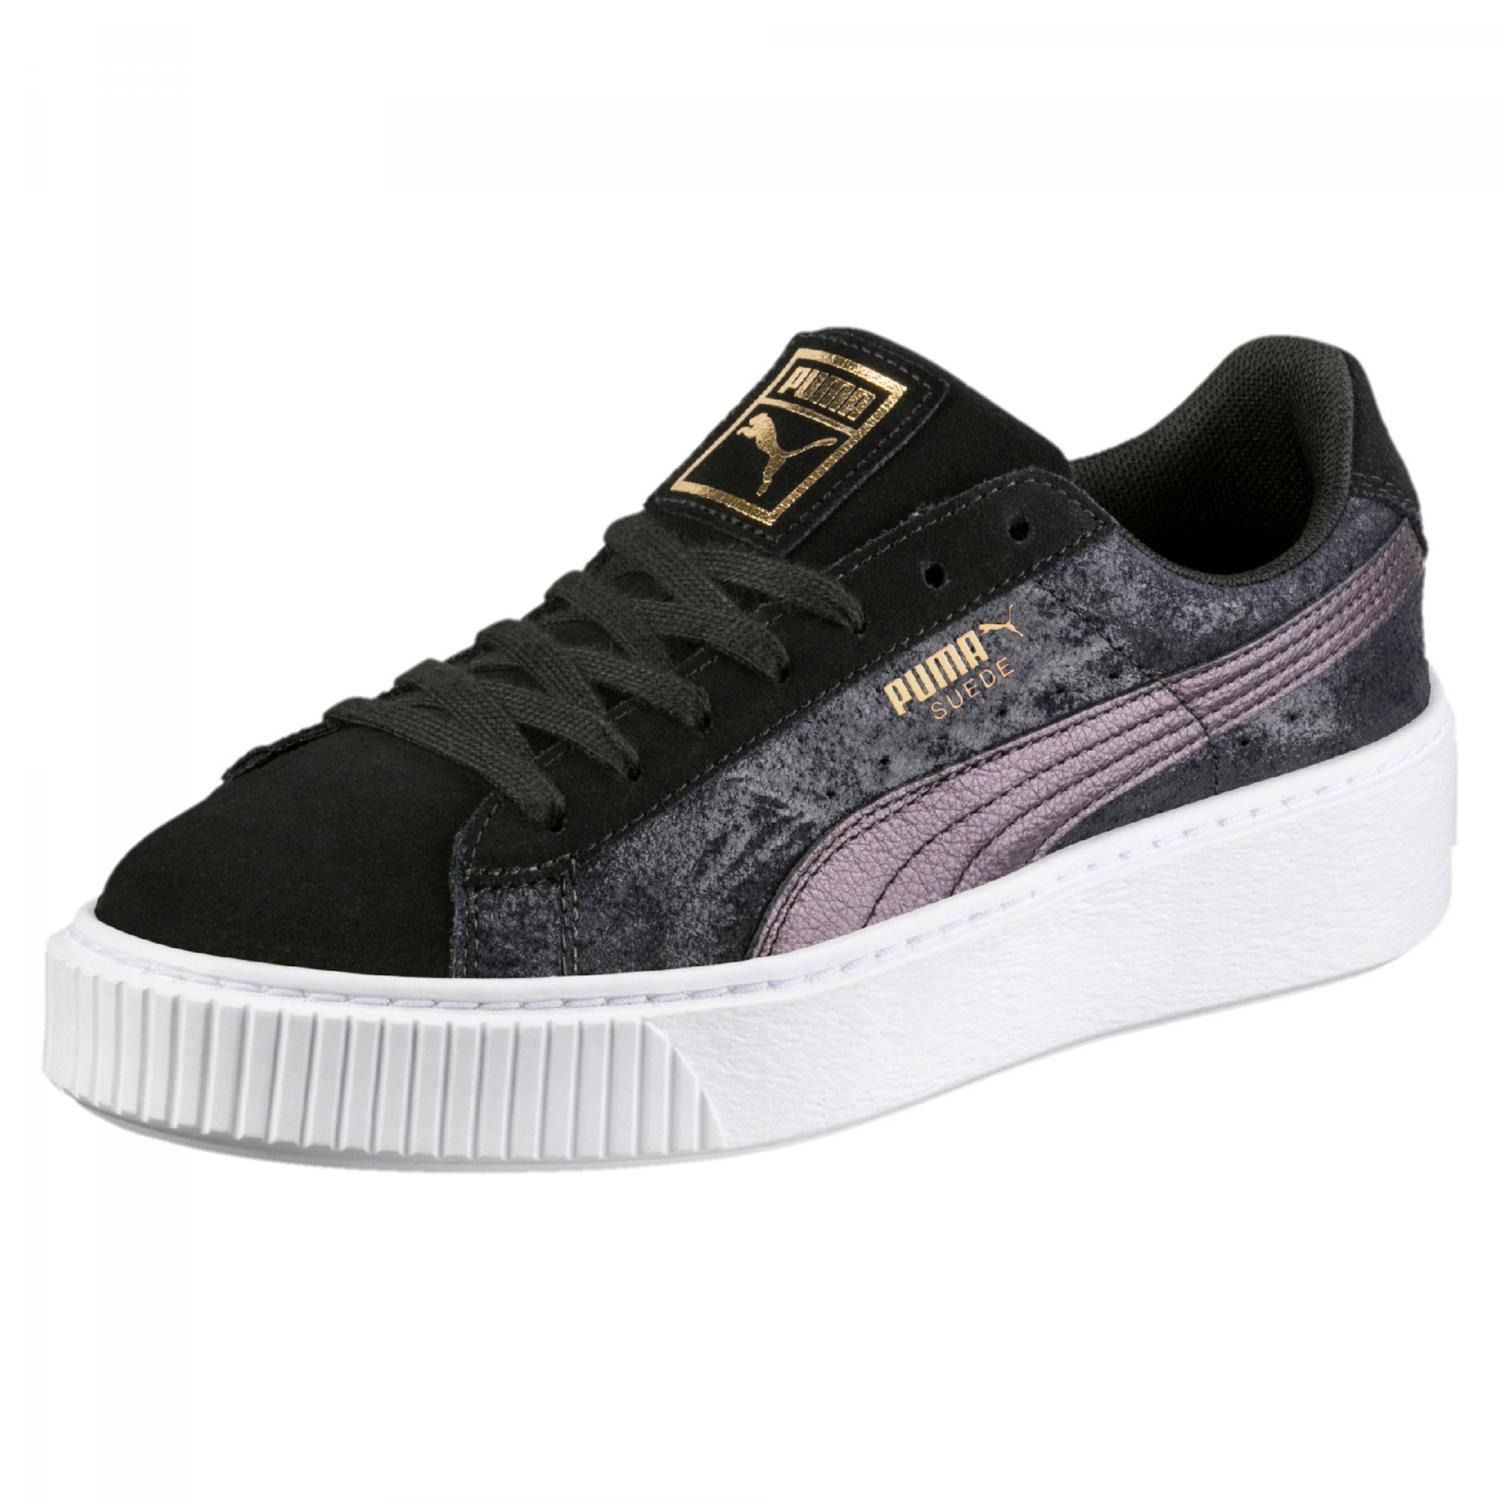 Puma Shoes Suede Platform Safari Woman